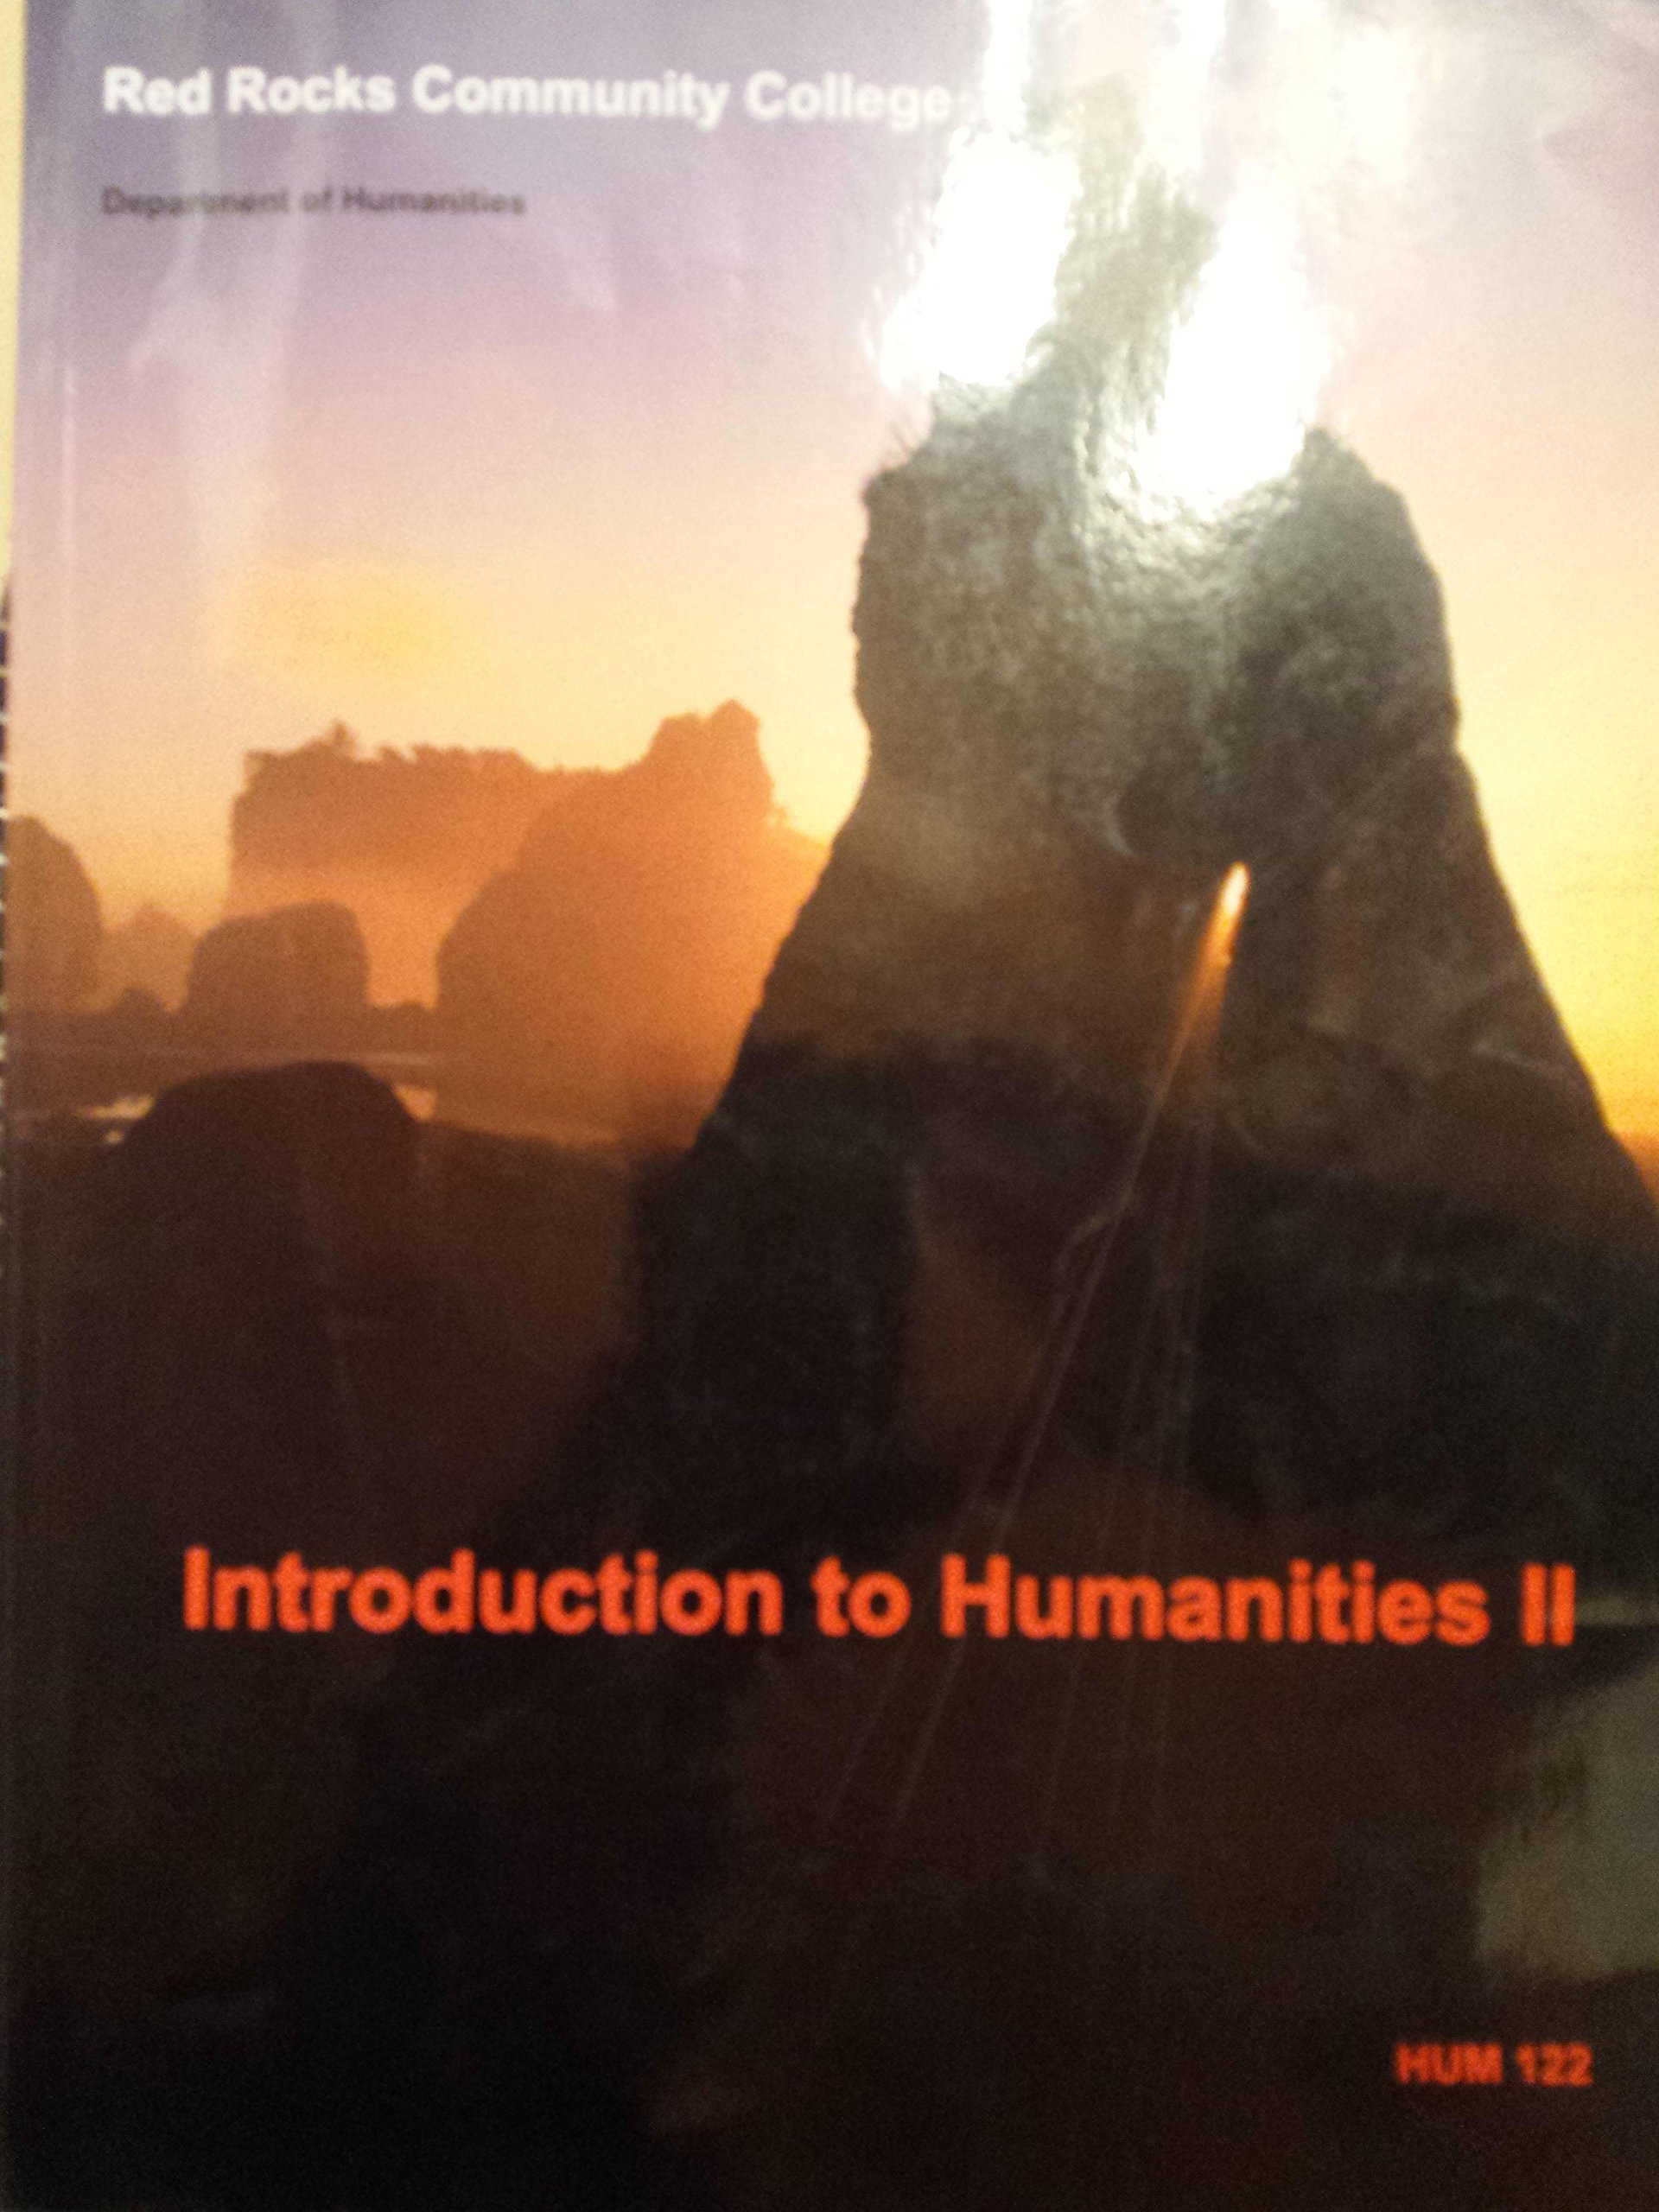 Read Online Introduction To Humanities II (Hum 122 Red Rocks Community College) ebook